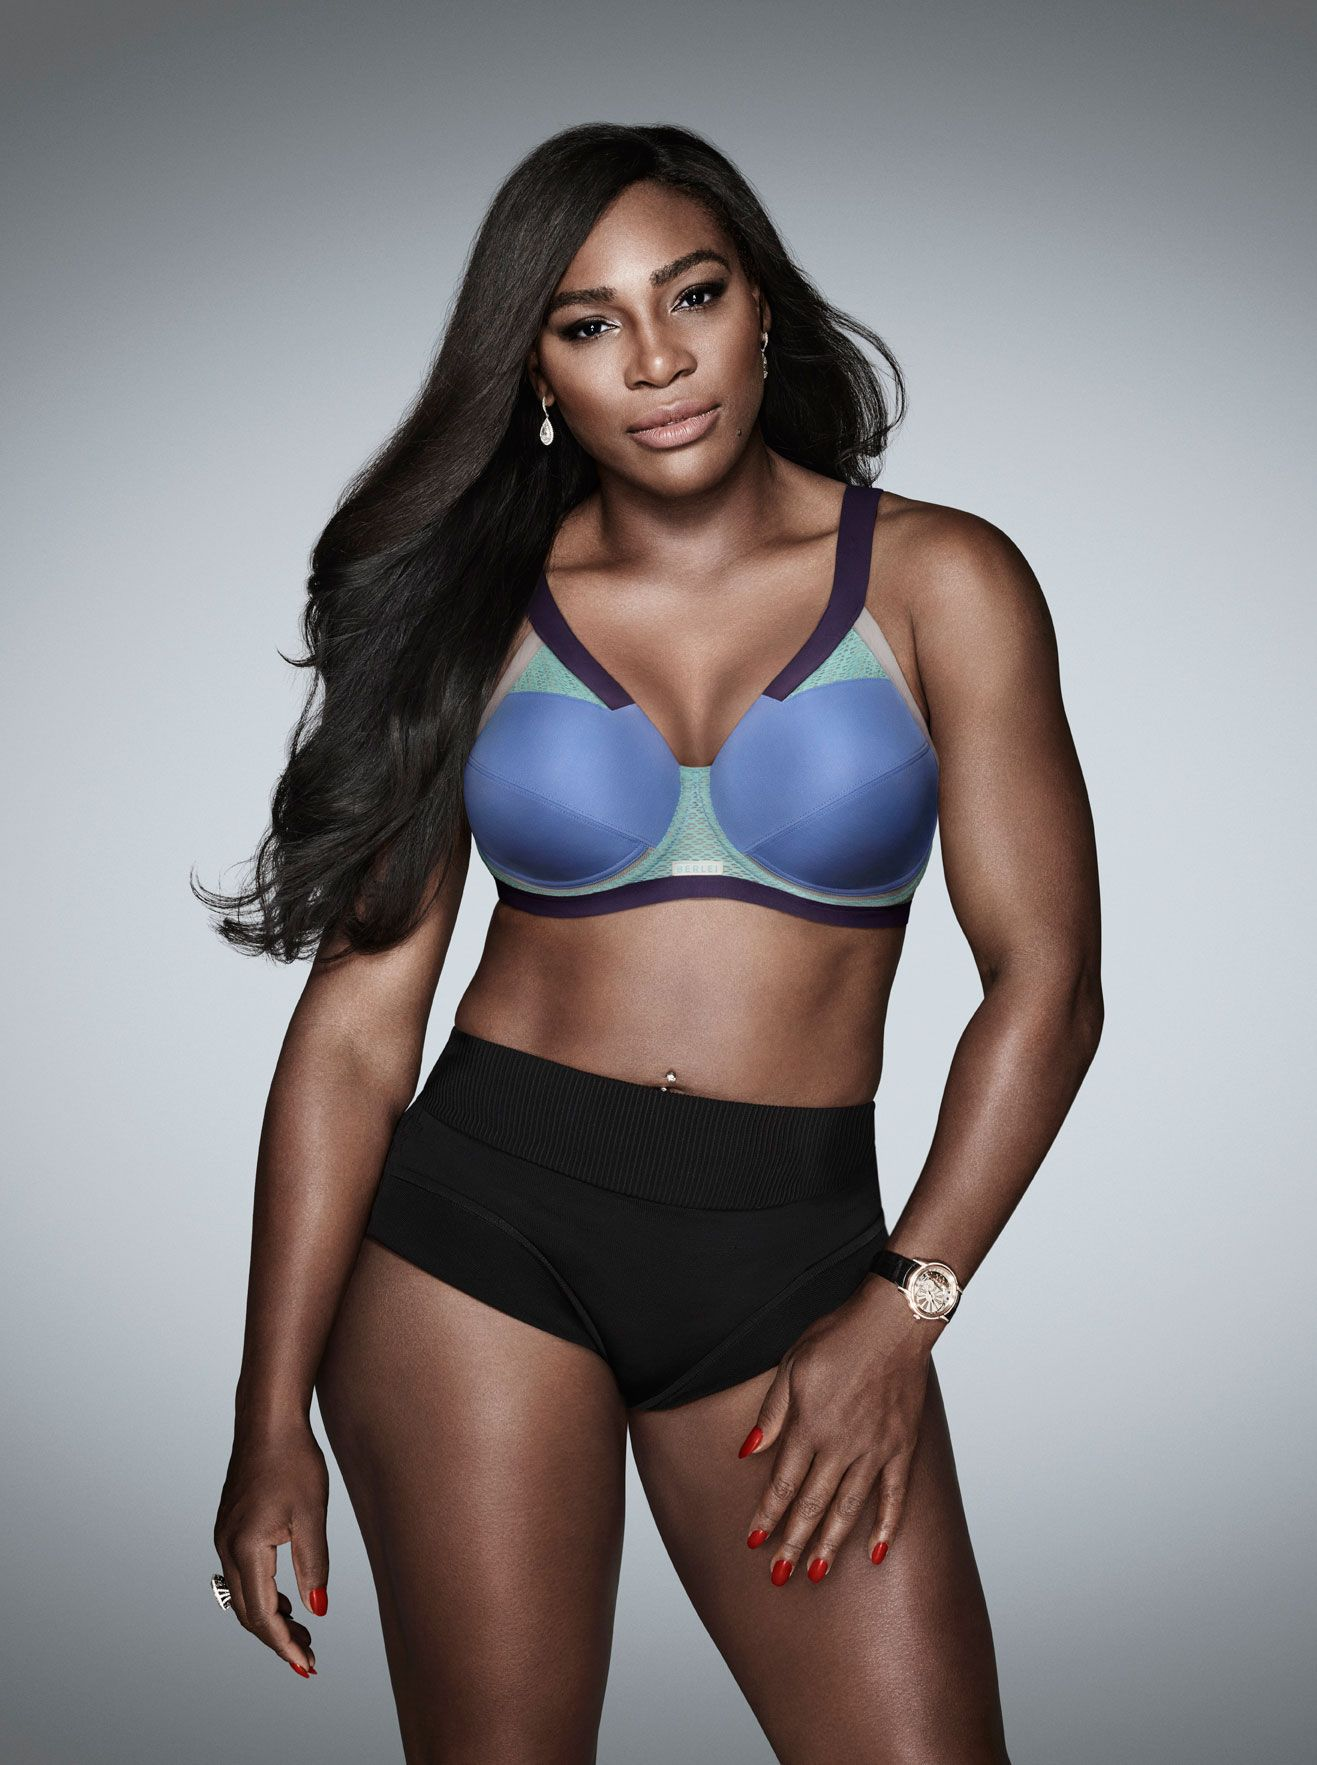 Serena Williams's Sports Bras Are Great for Big Boobs